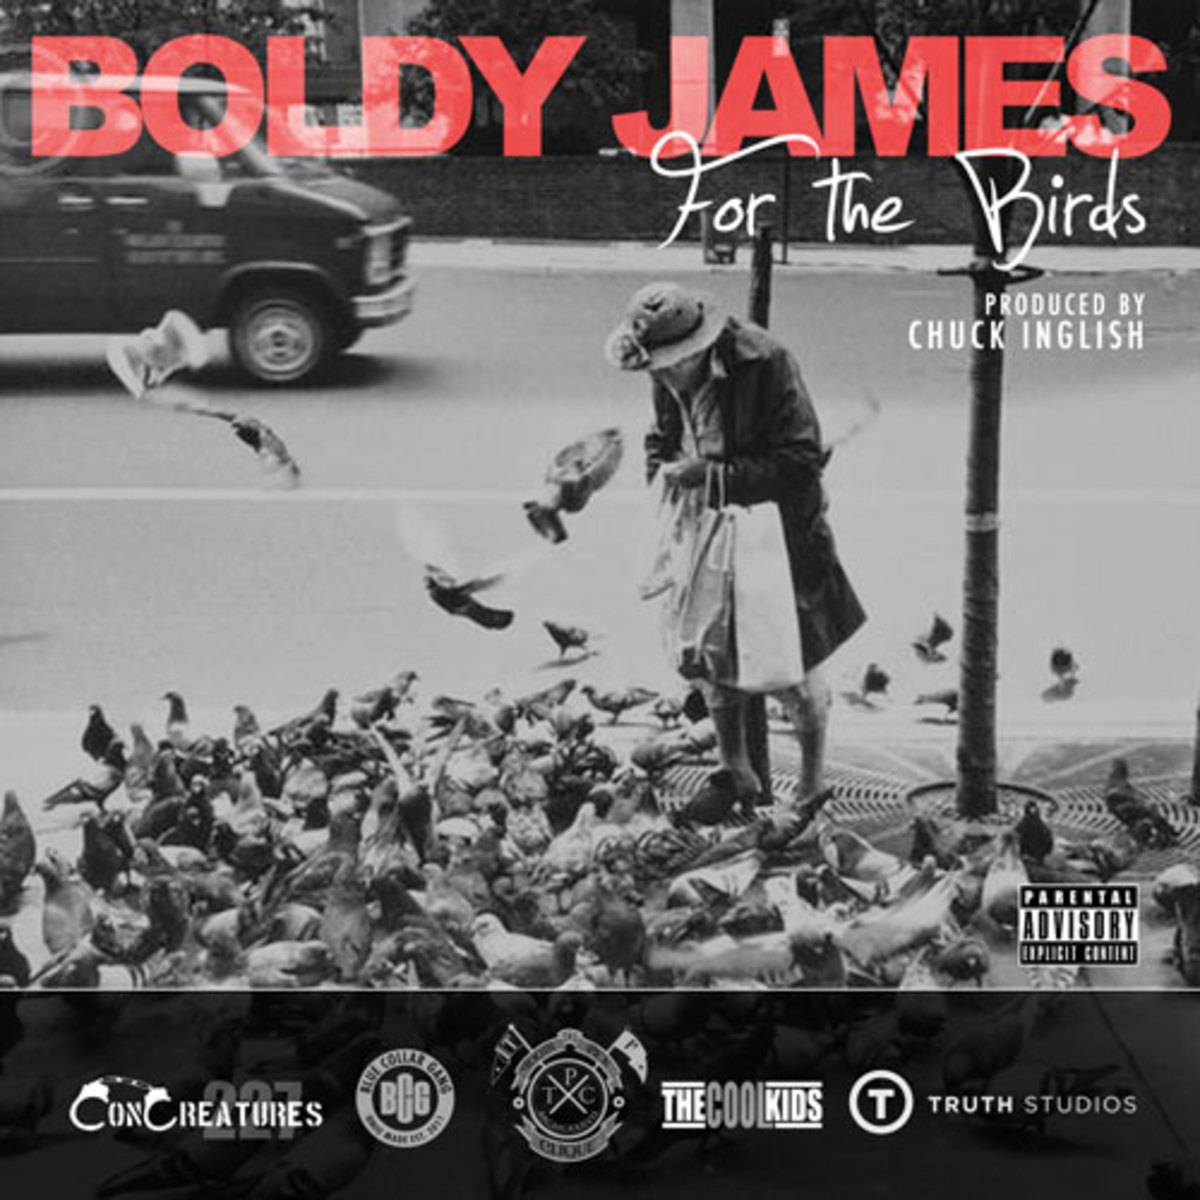 boldyjames-forthebirds.jpg